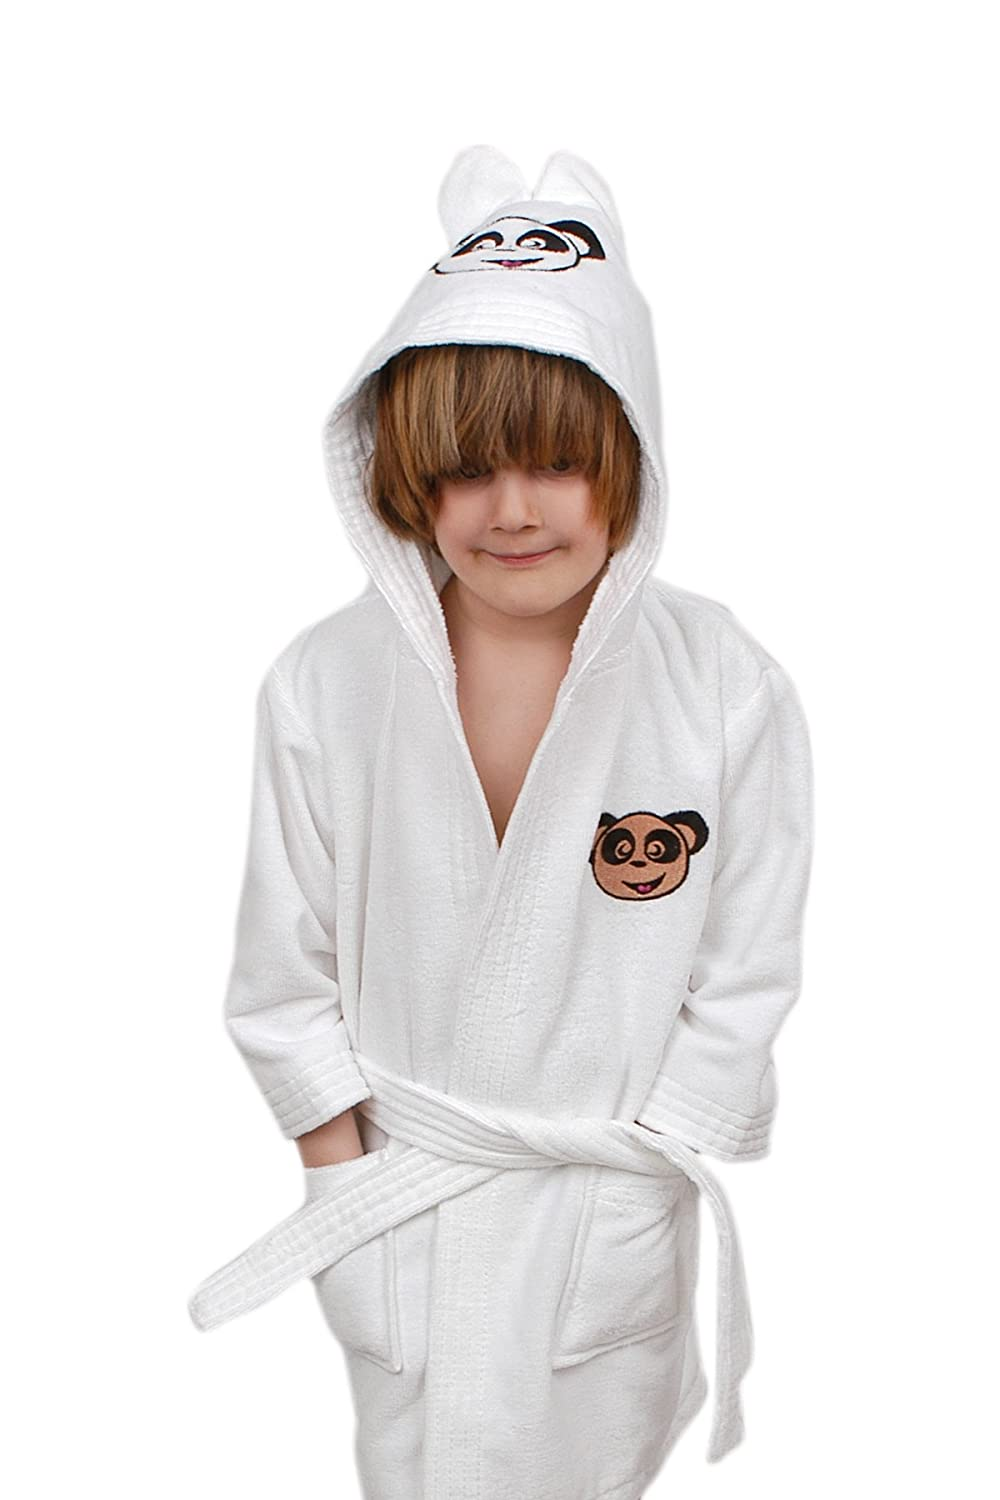 Made in Turkey Boys and Girls Kids Ekstra Soft Cotton Hooded Bathrobe with Embroidered